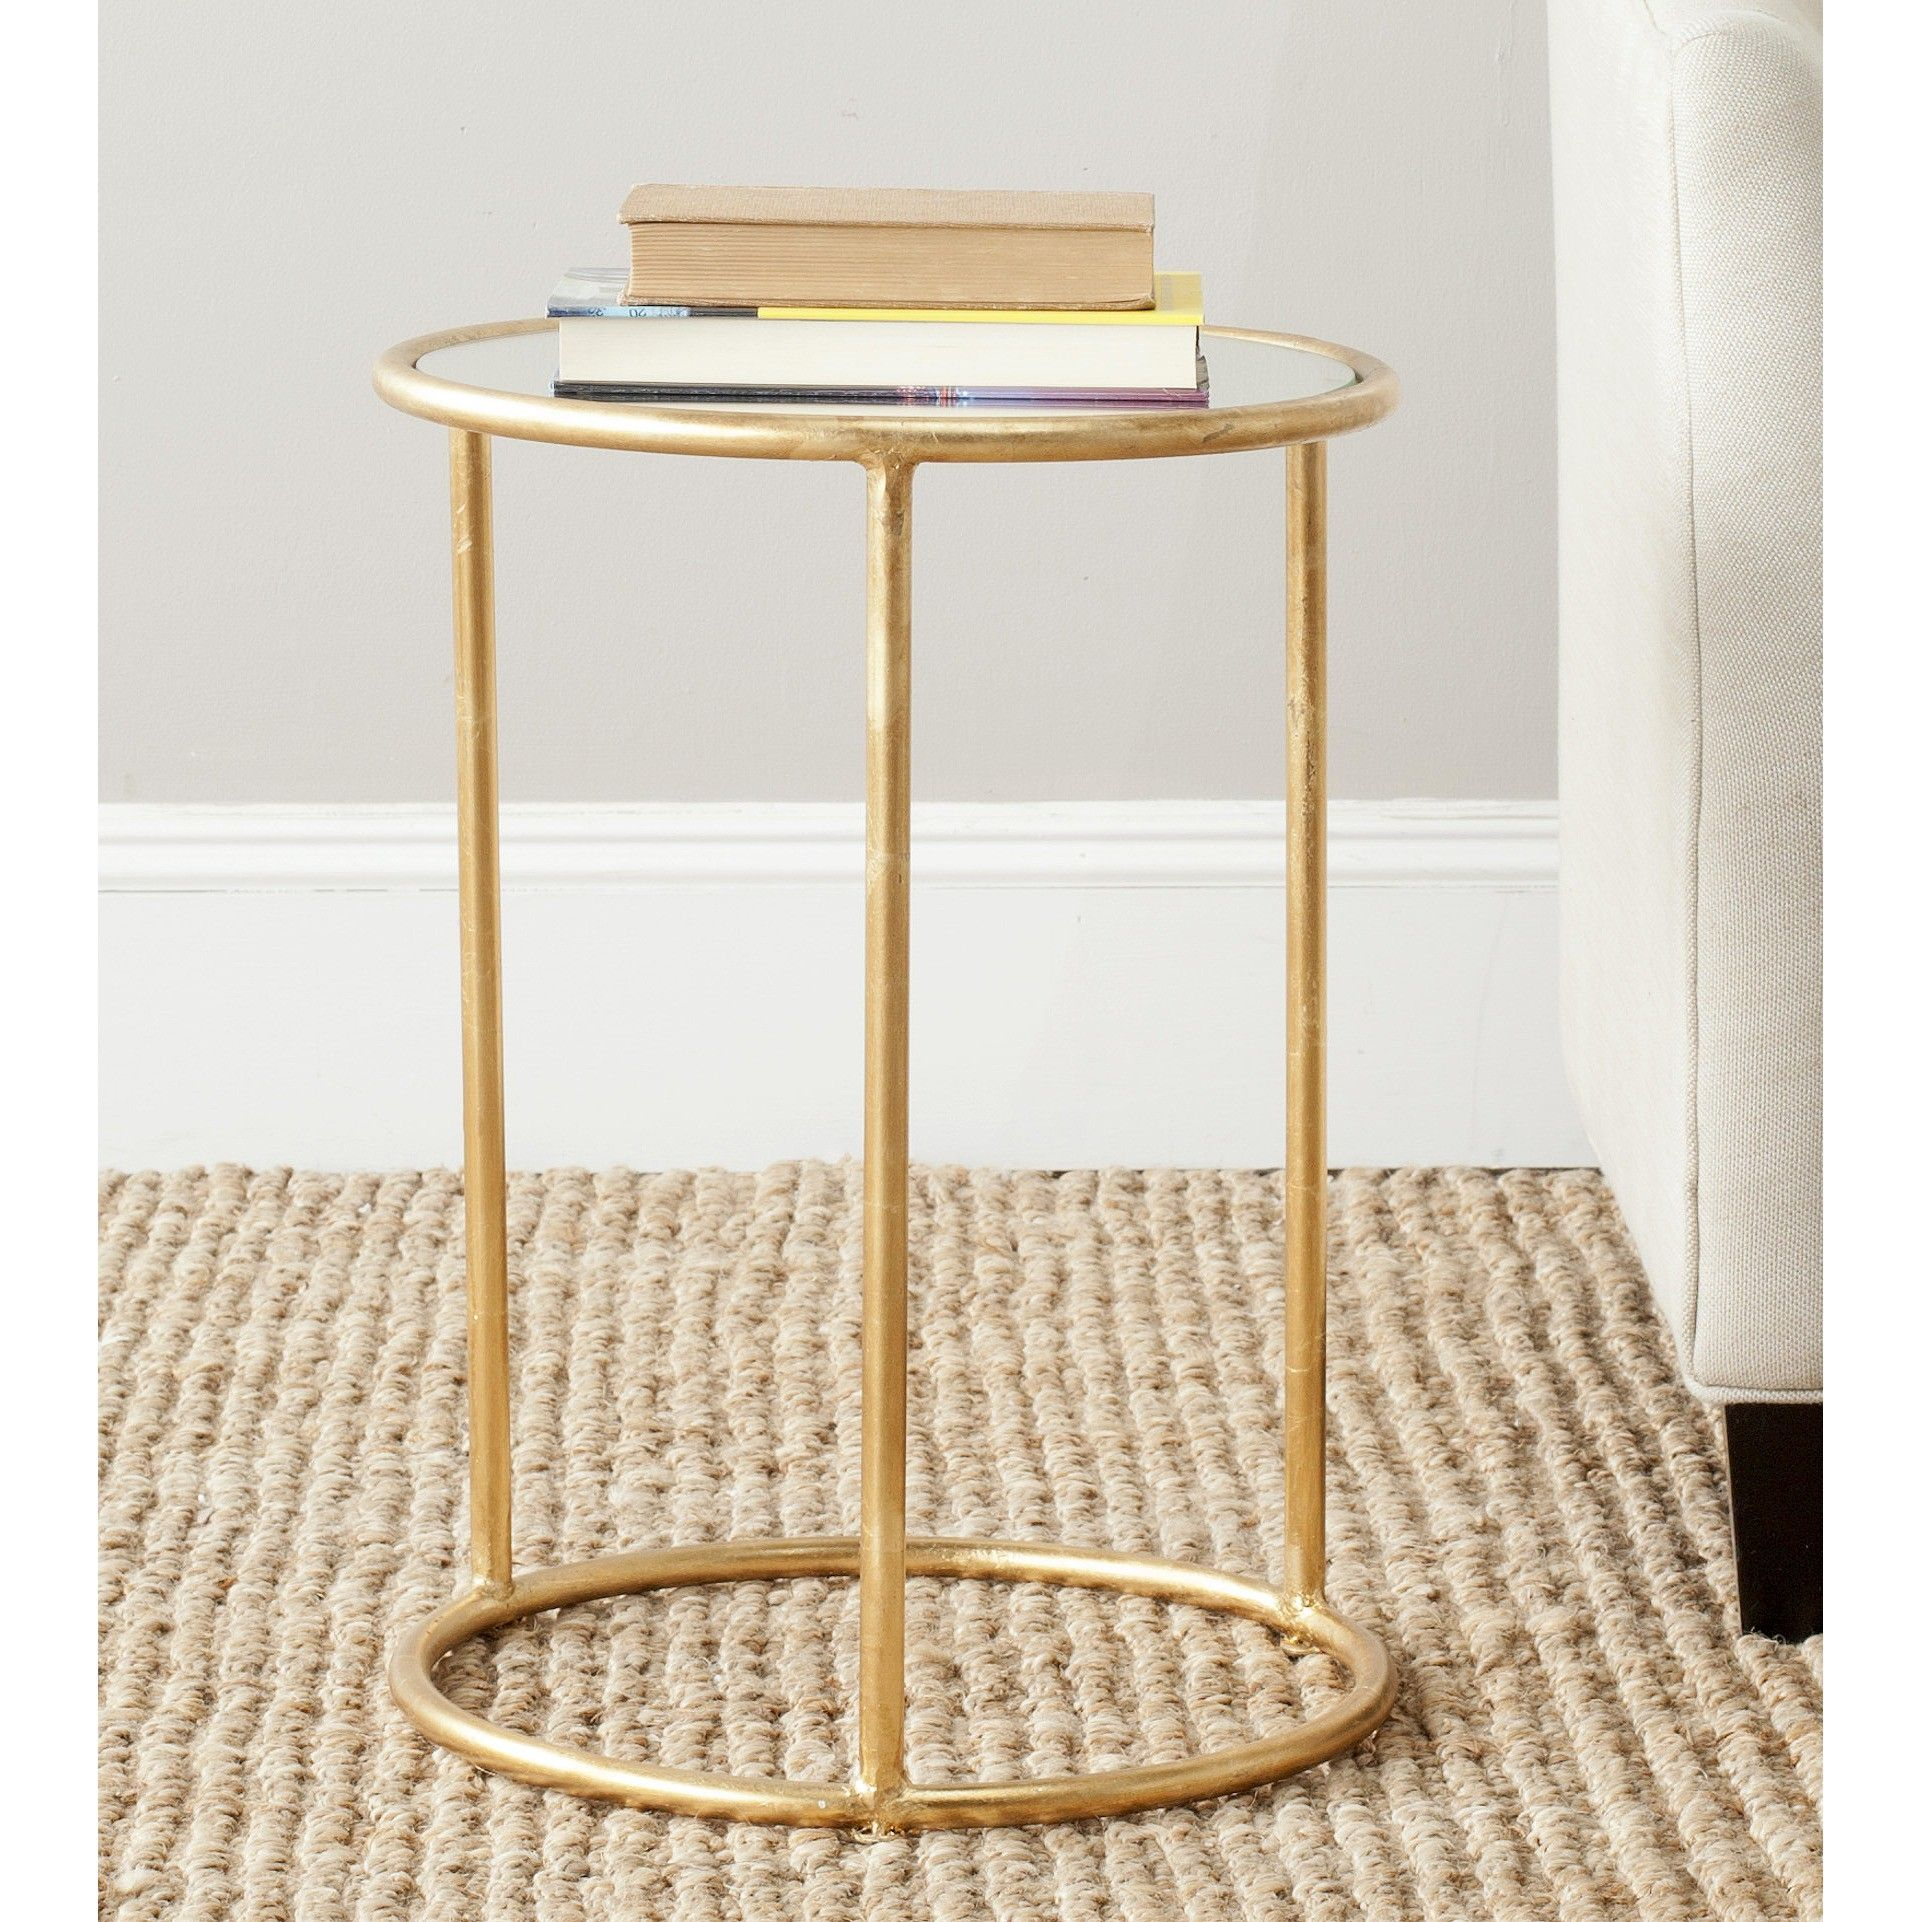 safavieh shay accent table target when apartment wants gold upholstered dining chairs patio covers round bunnings outdoor settings mirror top coffee hoodie jacket ashley trunk